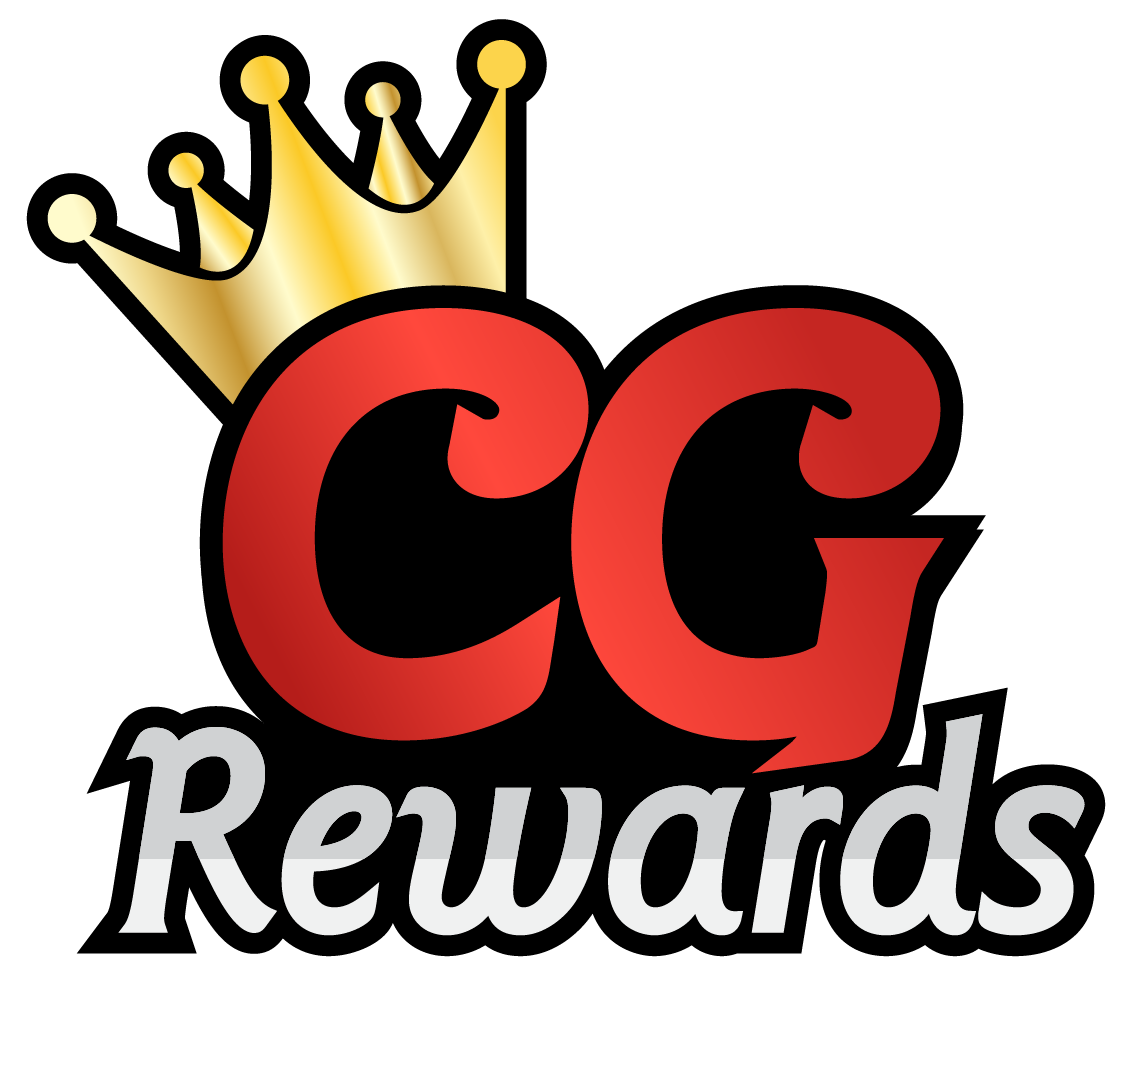 cg-rewards-logo